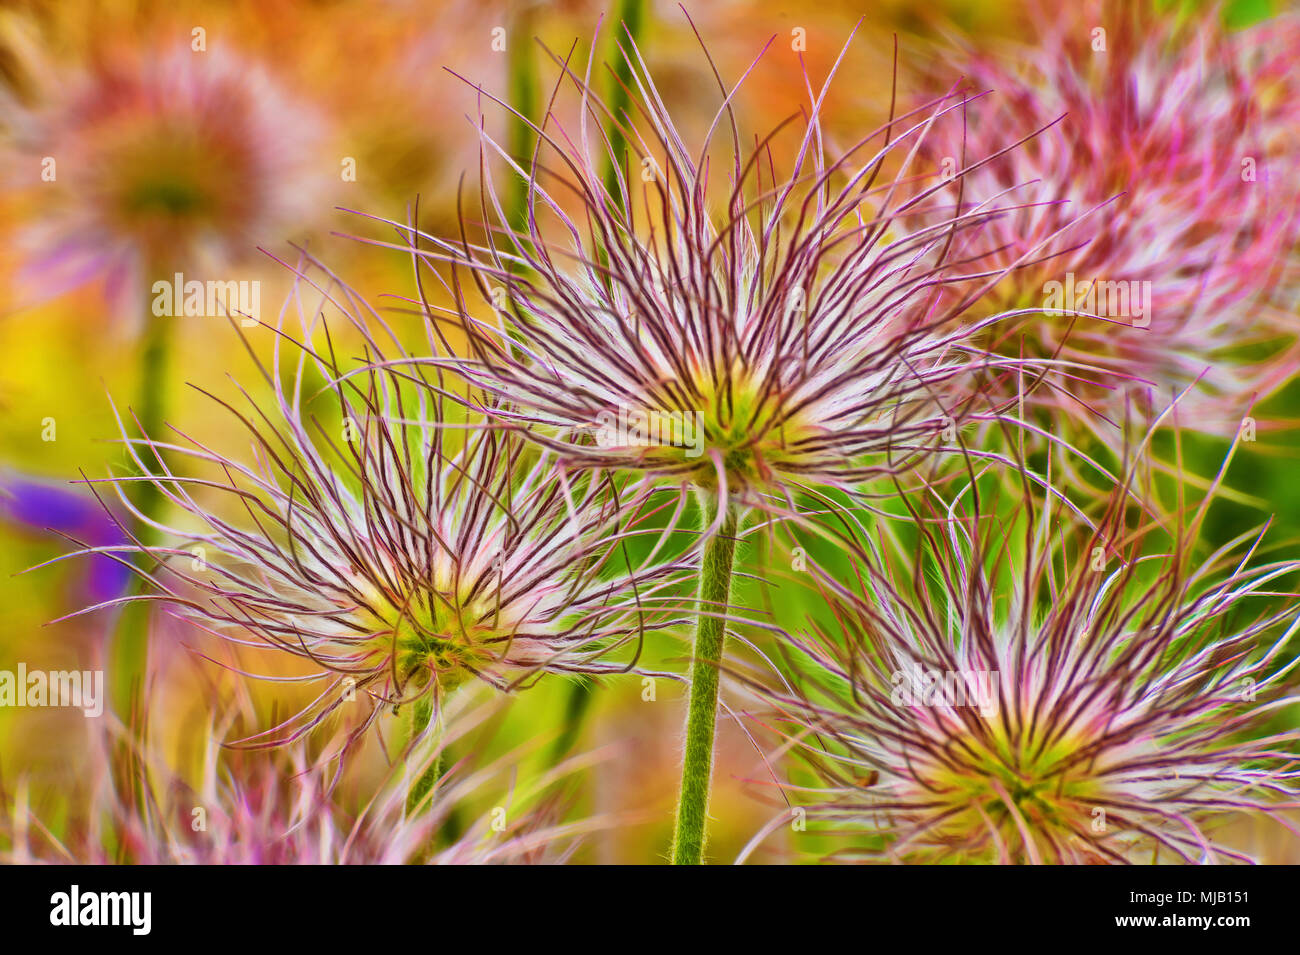 Stunning delicate yet bold Aster flowers in full bloom. Stock Photo